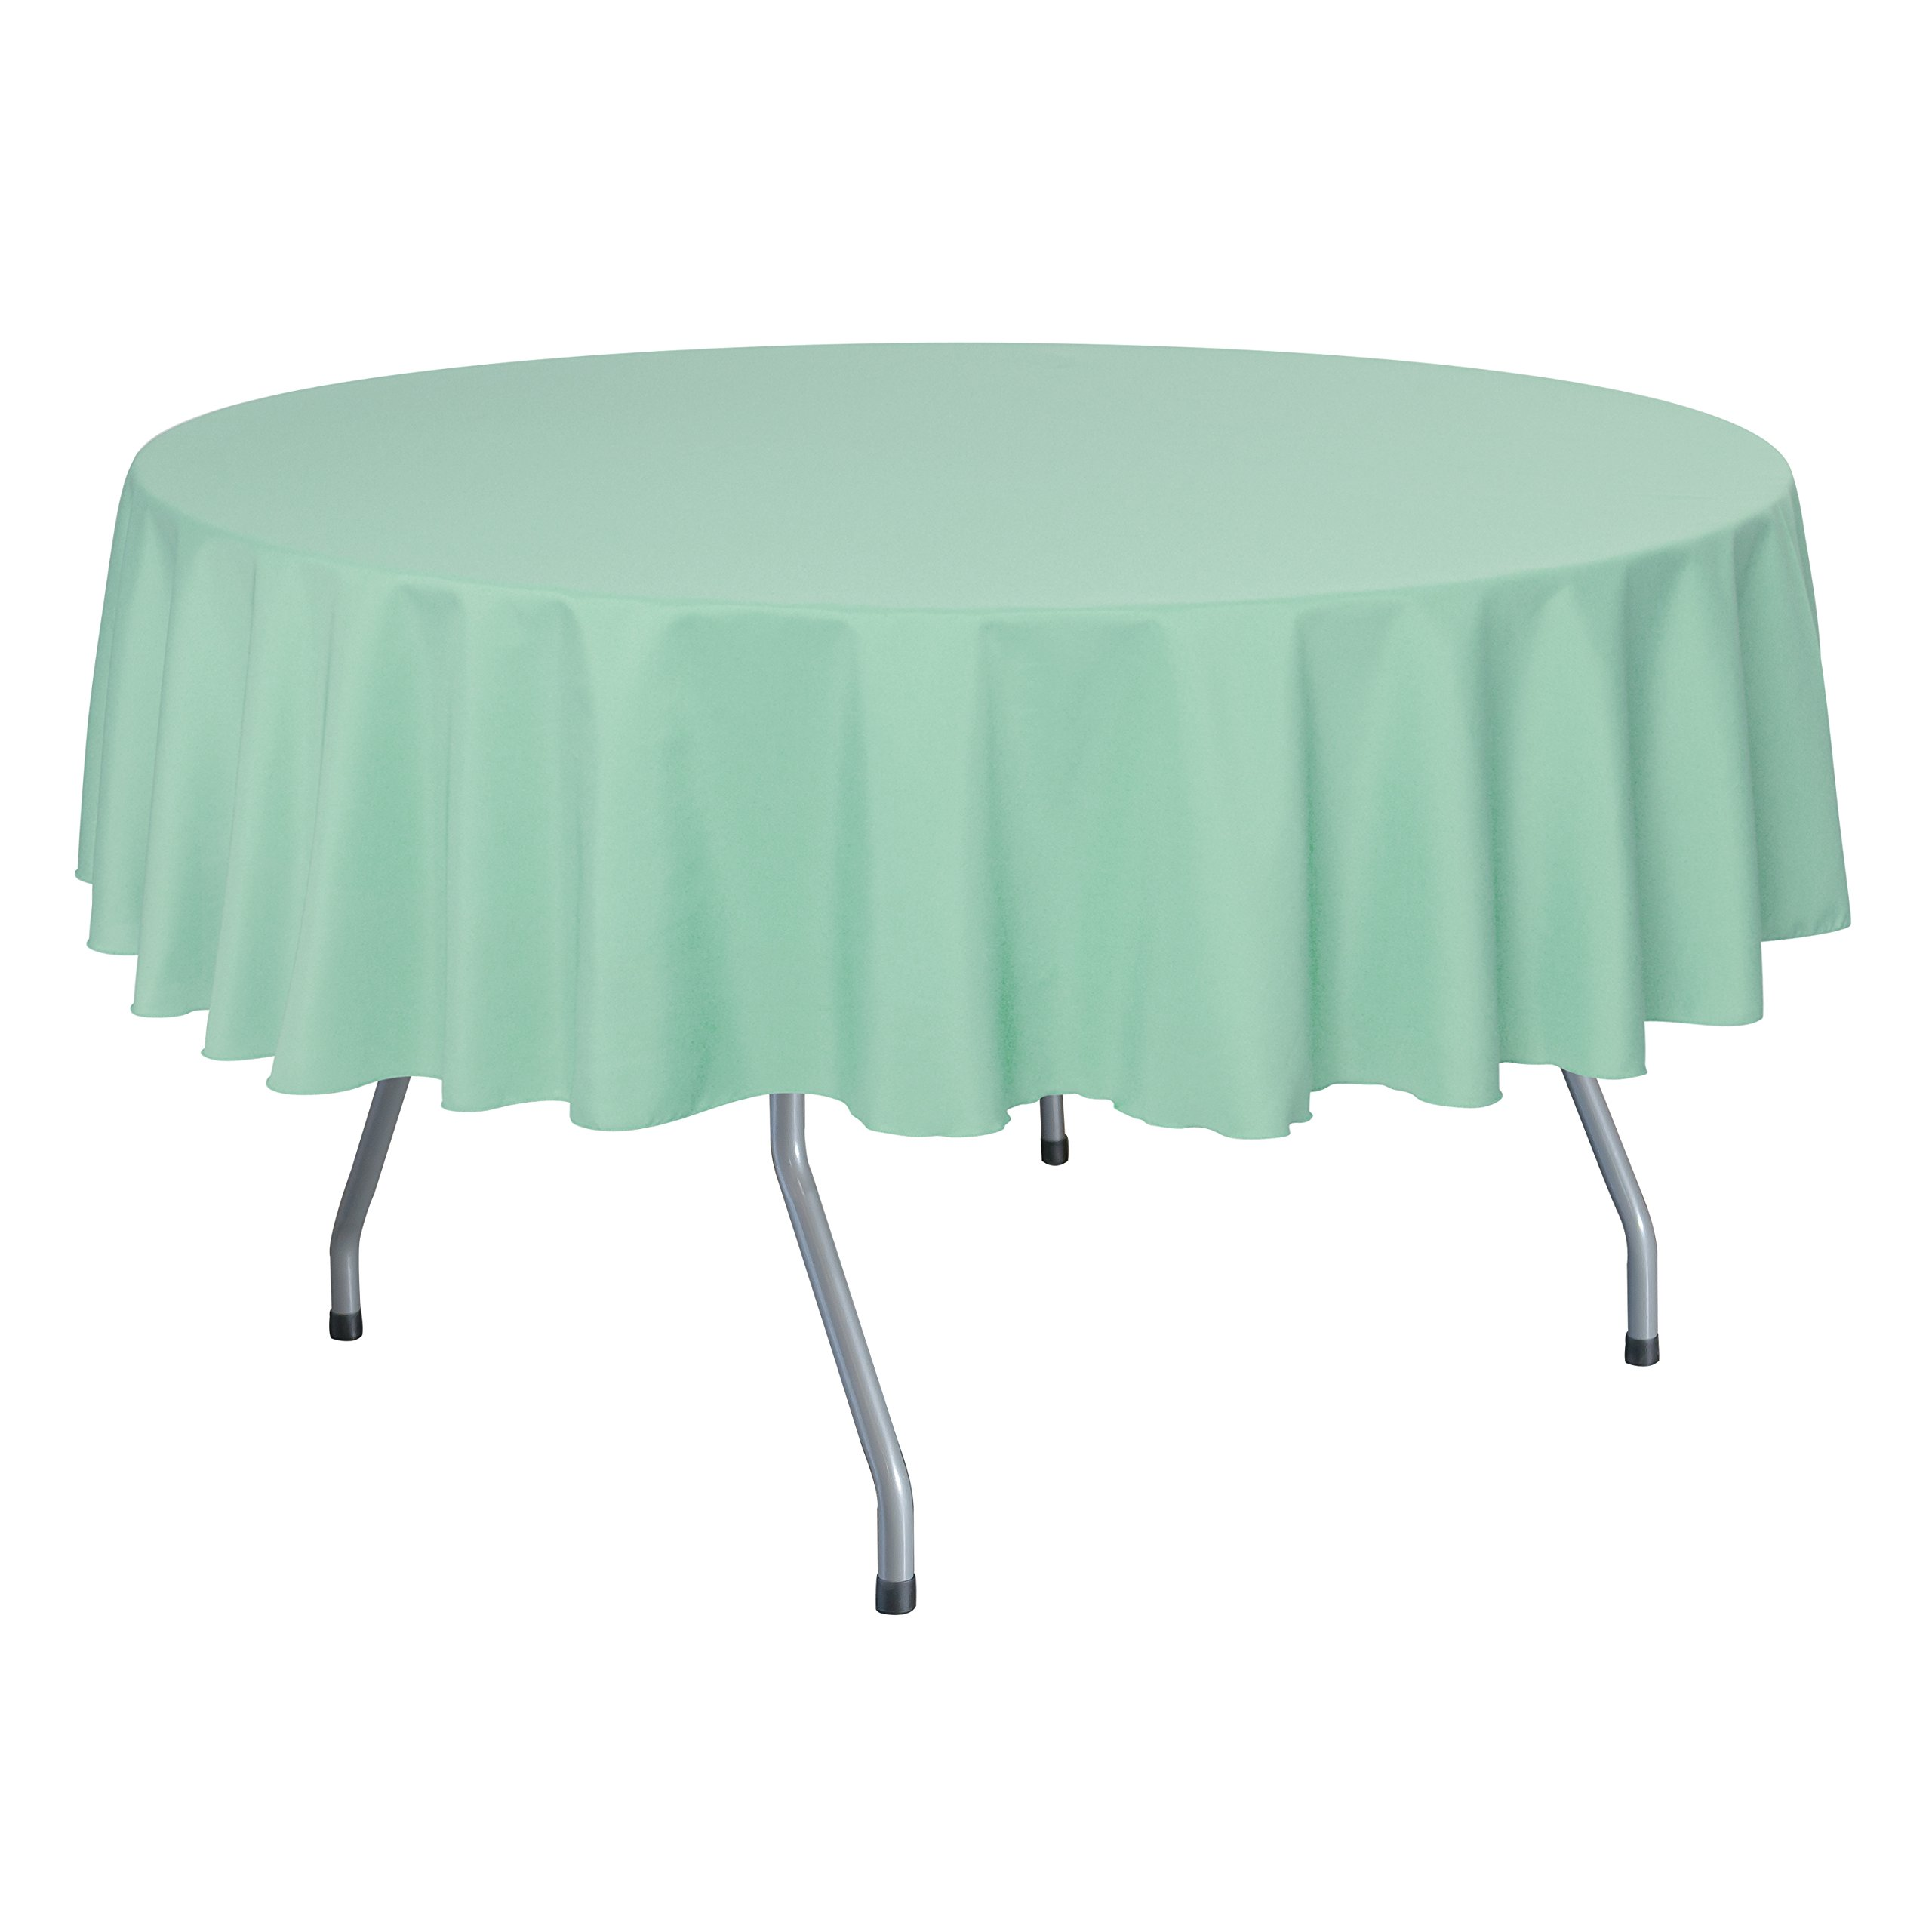 Ultimate Textile (10 Pack) 70-Inch Round Polyester Linen Tablecloth - for Wedding, Restaurant or Banquet use, Mint Light Green